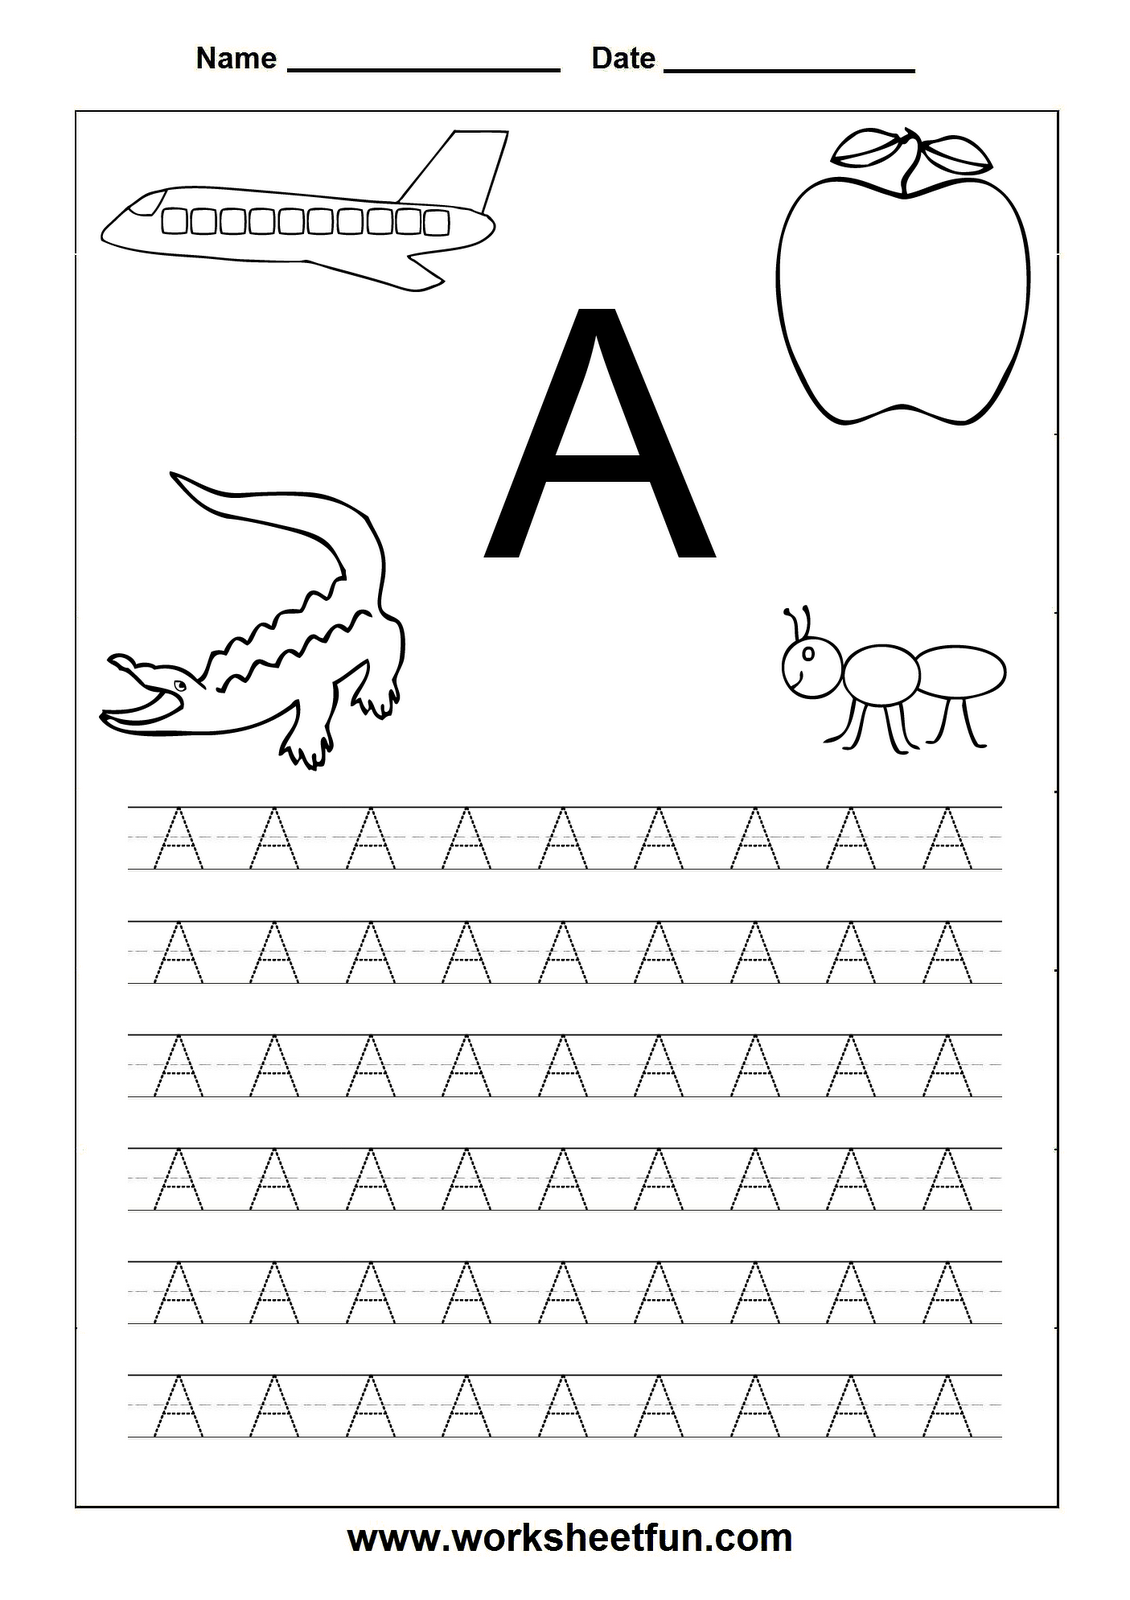 Free Worksheet Abc Writing Worksheets letter tracing worksheets free number names abc 17 best images about letters on pinterest handwriting and alphabet